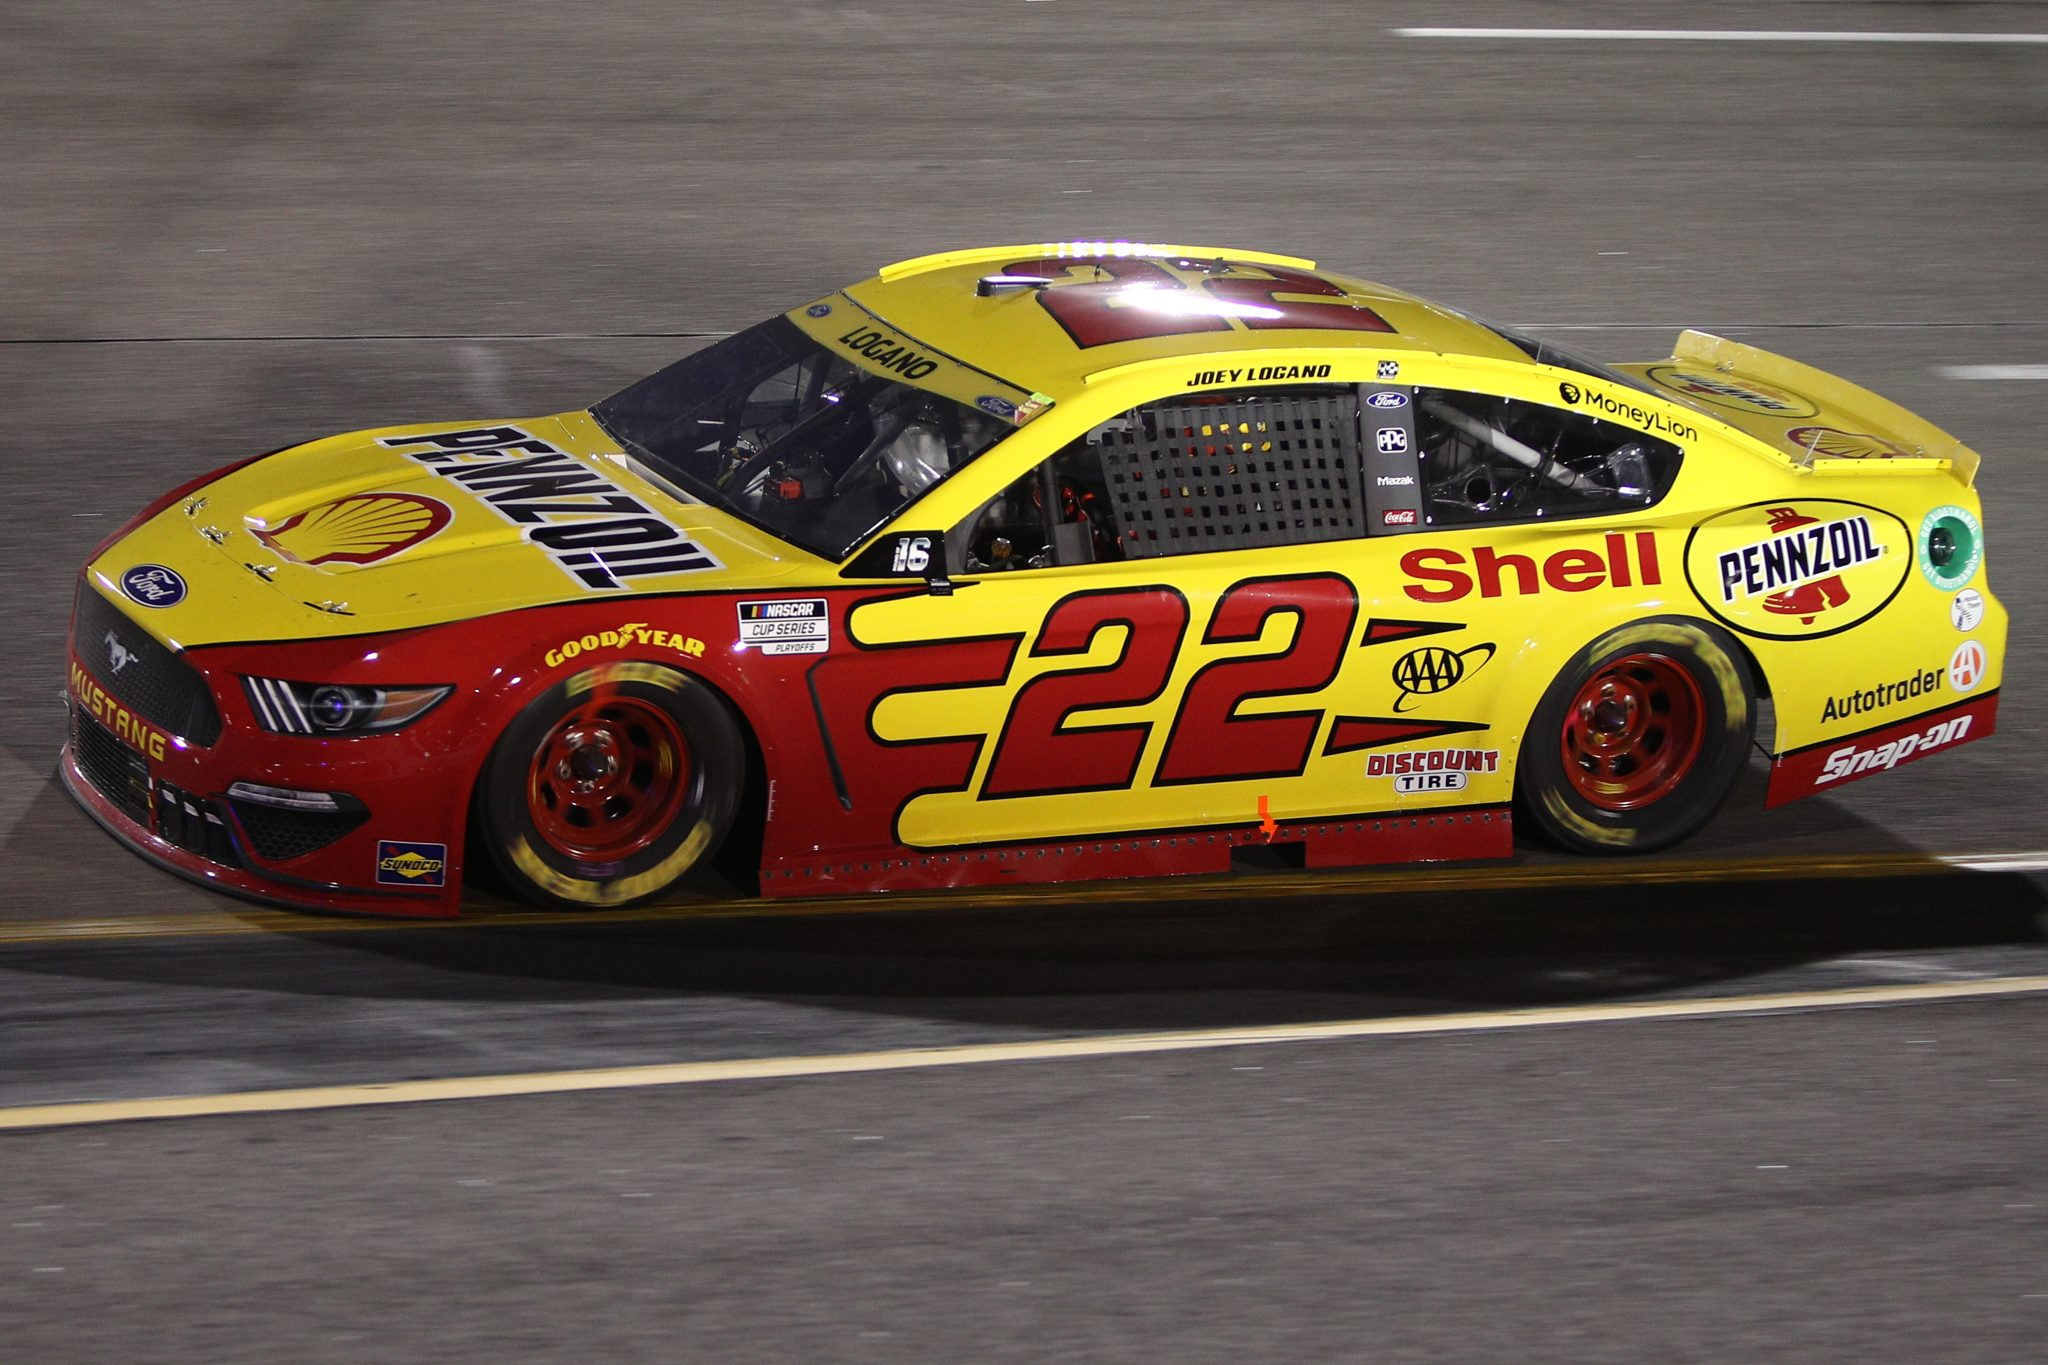 RICHMOND, VIRGINIA - SEPTEMBER 11: Joey Logano, driver of the #22 Shell Pennzoil Ford, drives during the NASCAR Cup Series Federated Auto Parts 400 Salute to First Responders at Richmond Raceway on September 11, 2021 in Richmond, Virginia. (Photo by Sean Gardner/Getty Images)   Getty Images